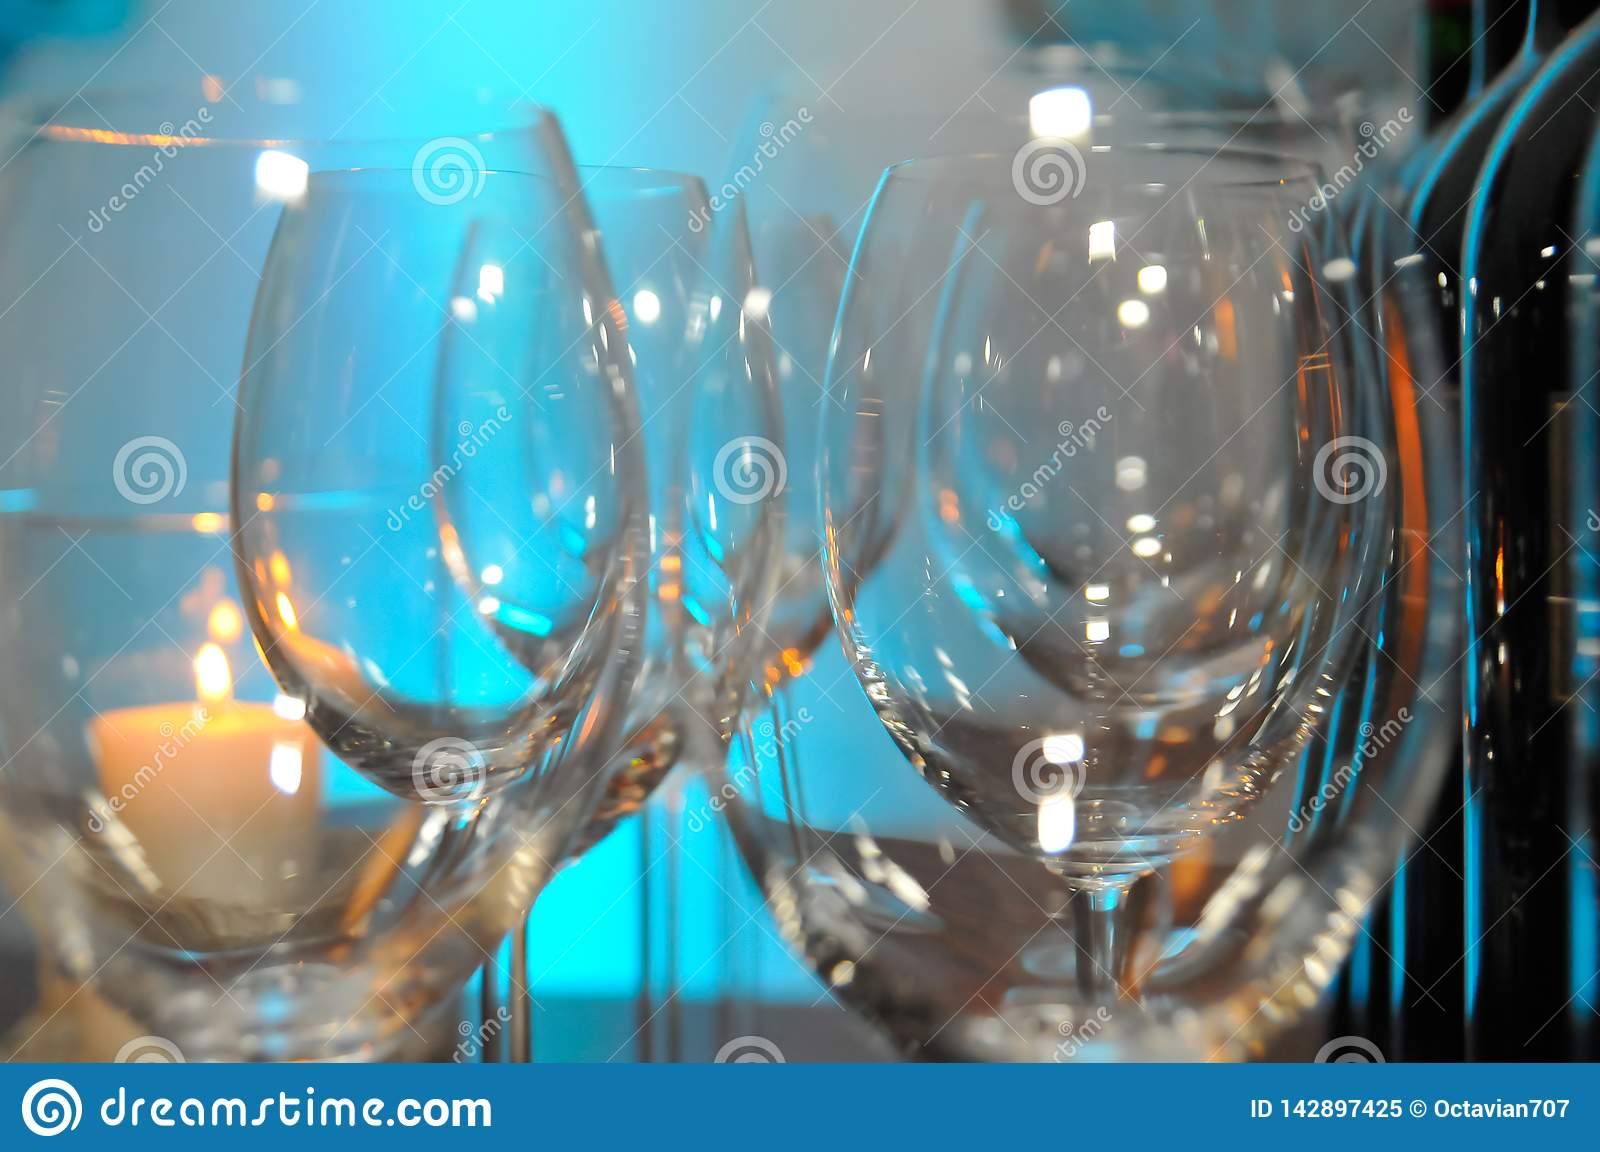 Two rows of empty glasses on a table